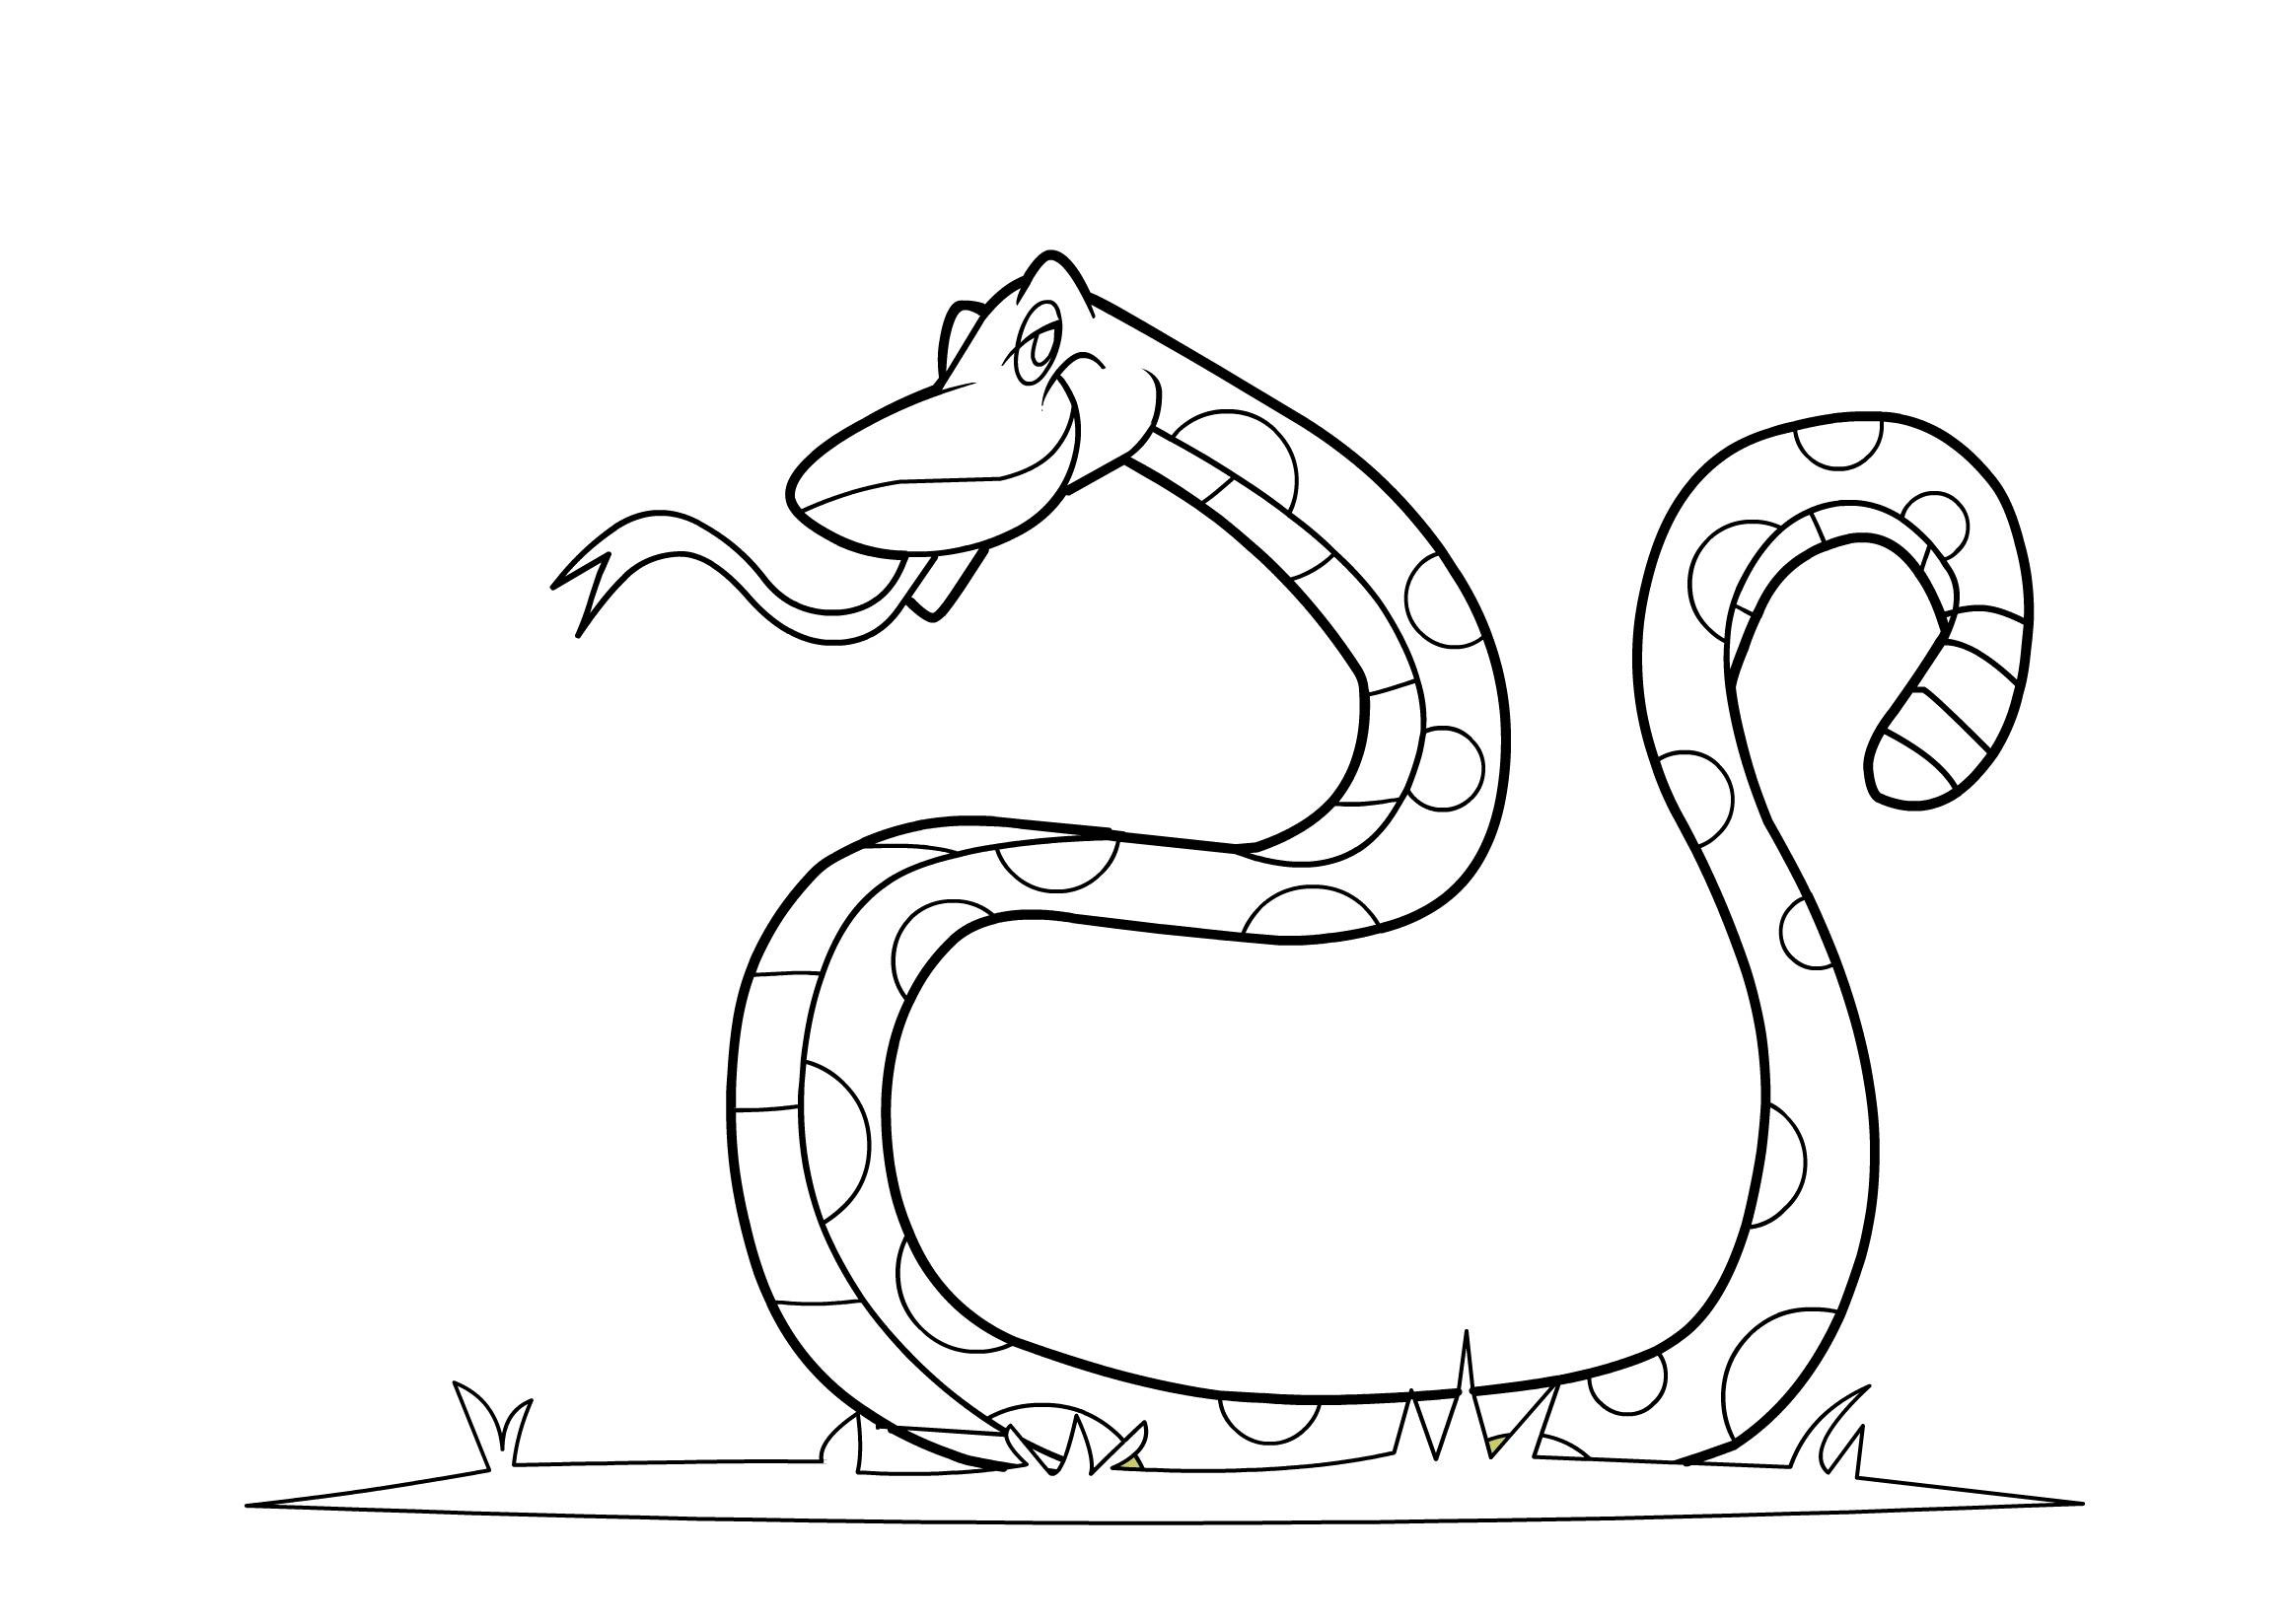 coloring pages cotton mouth snake - photo#9